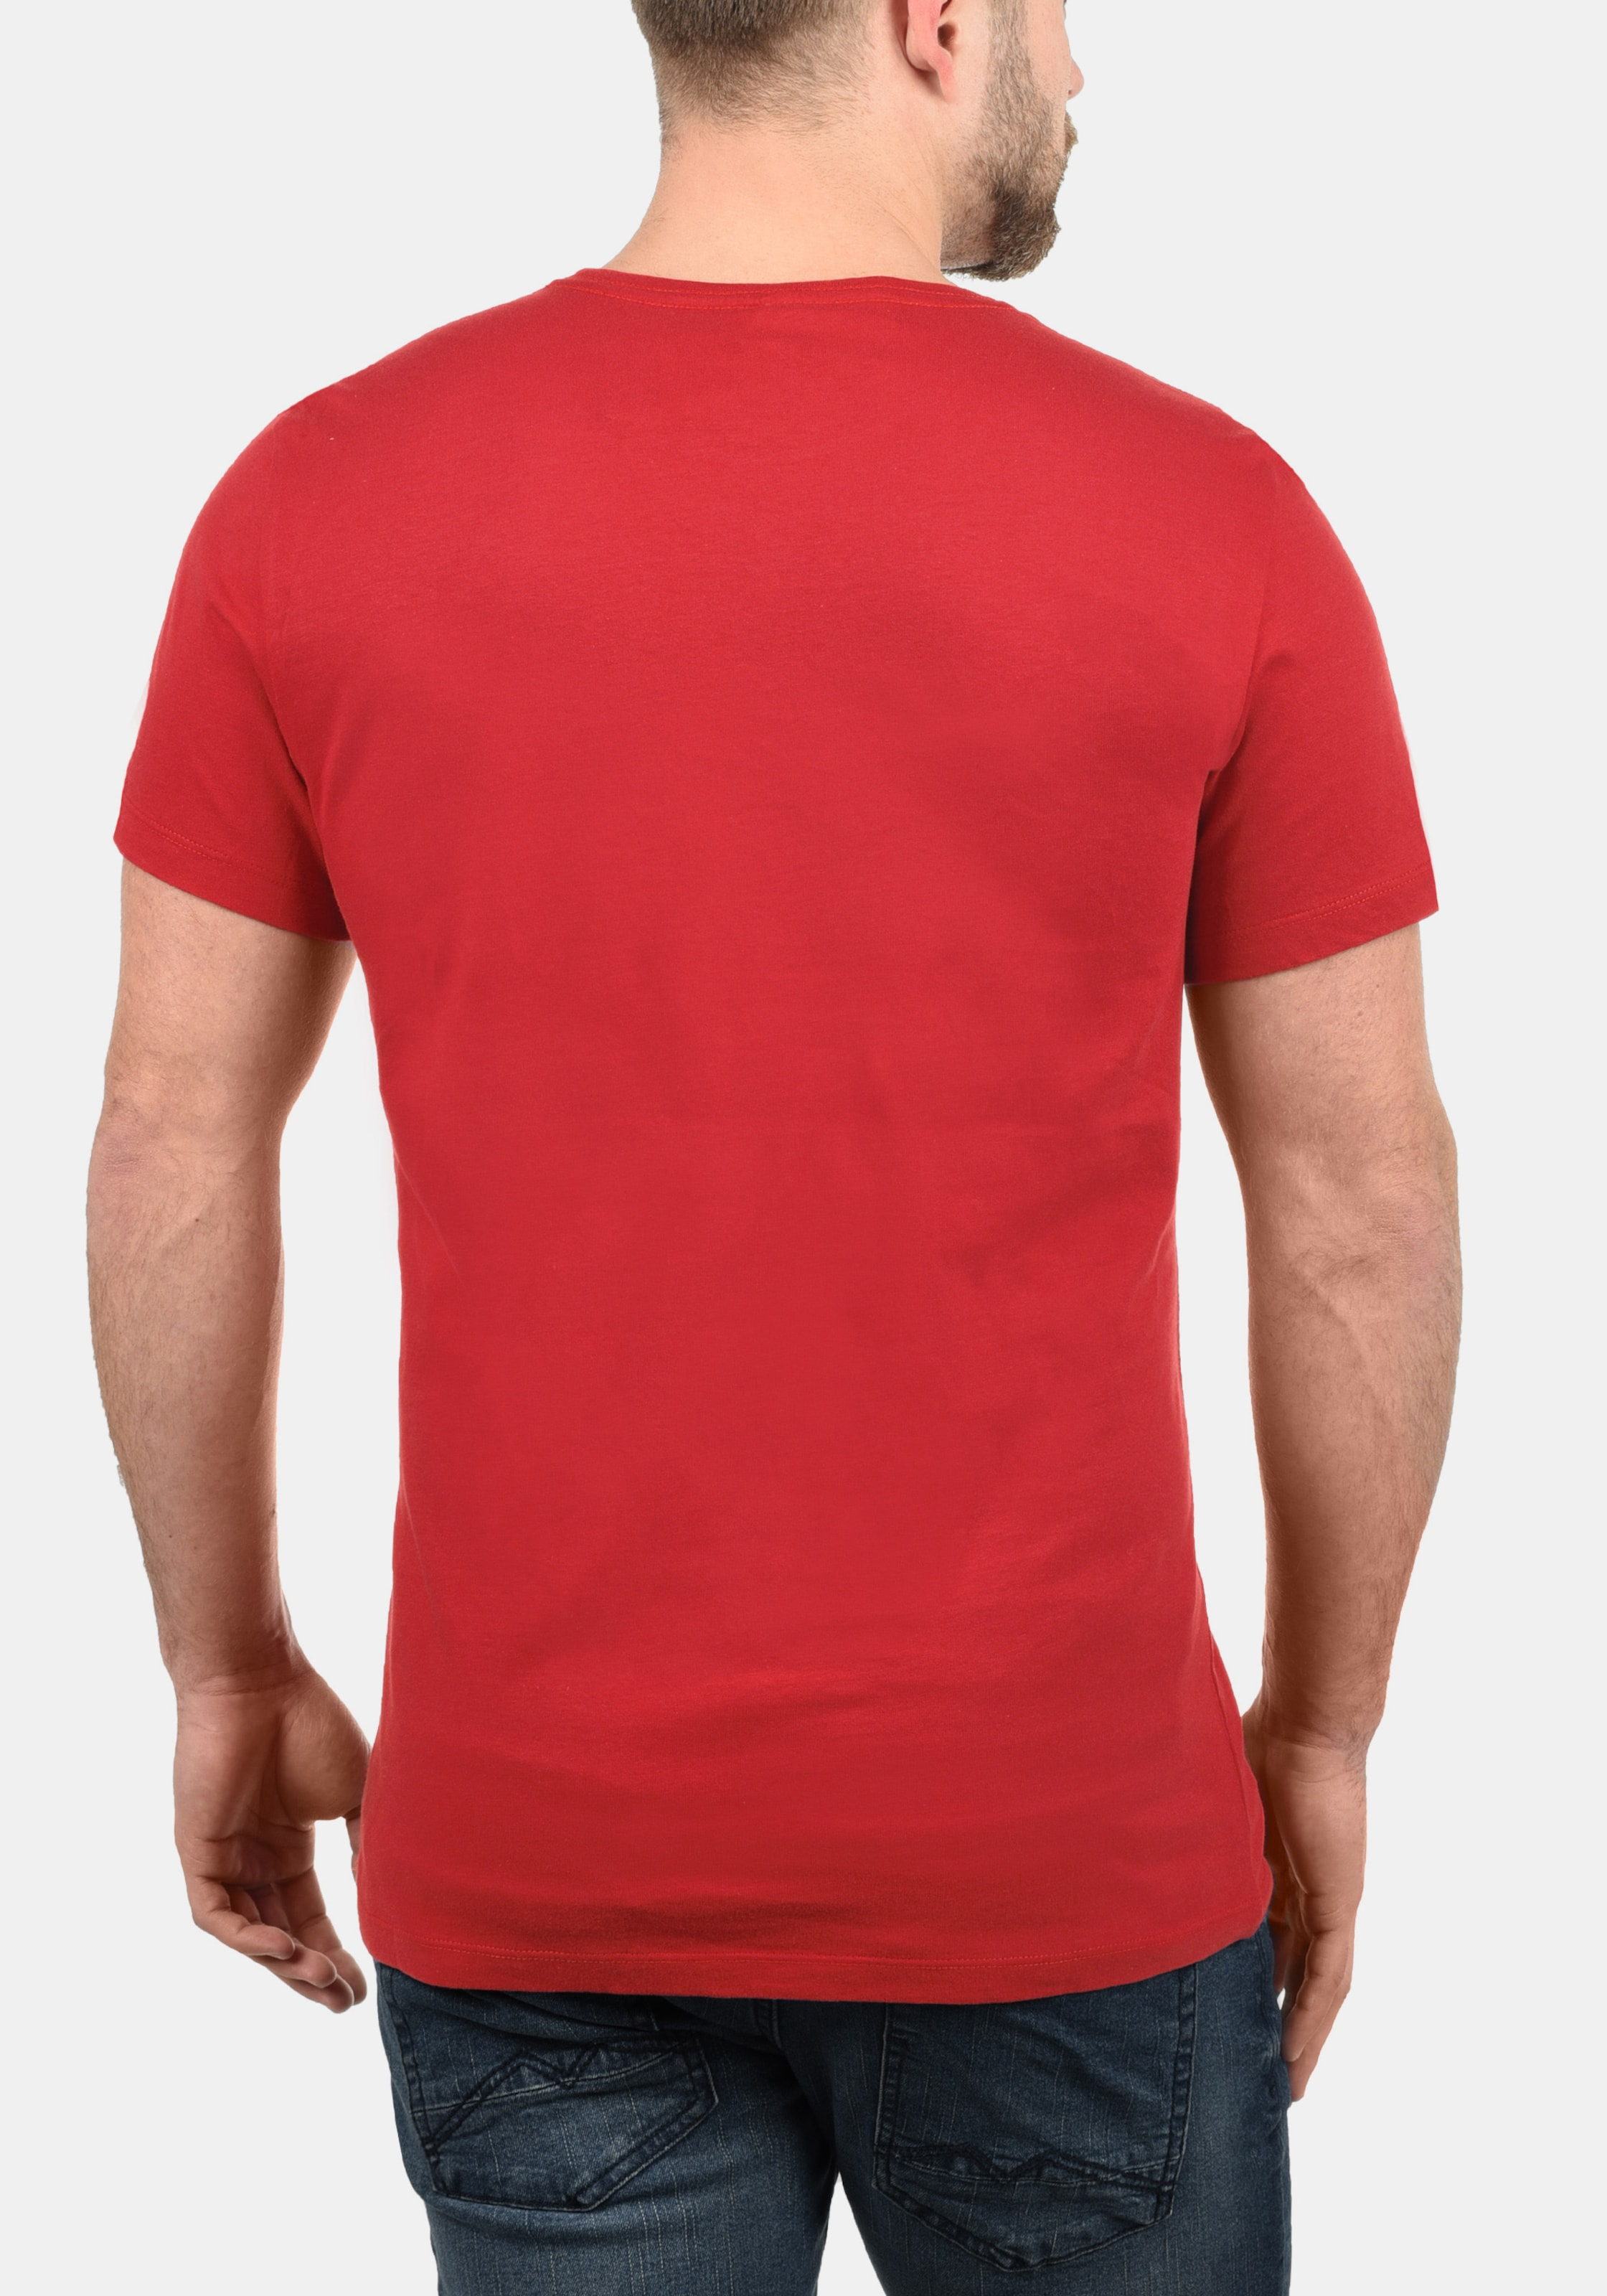 Blend In Rot Blend In Shirt Shirt Rot wPX8On0k